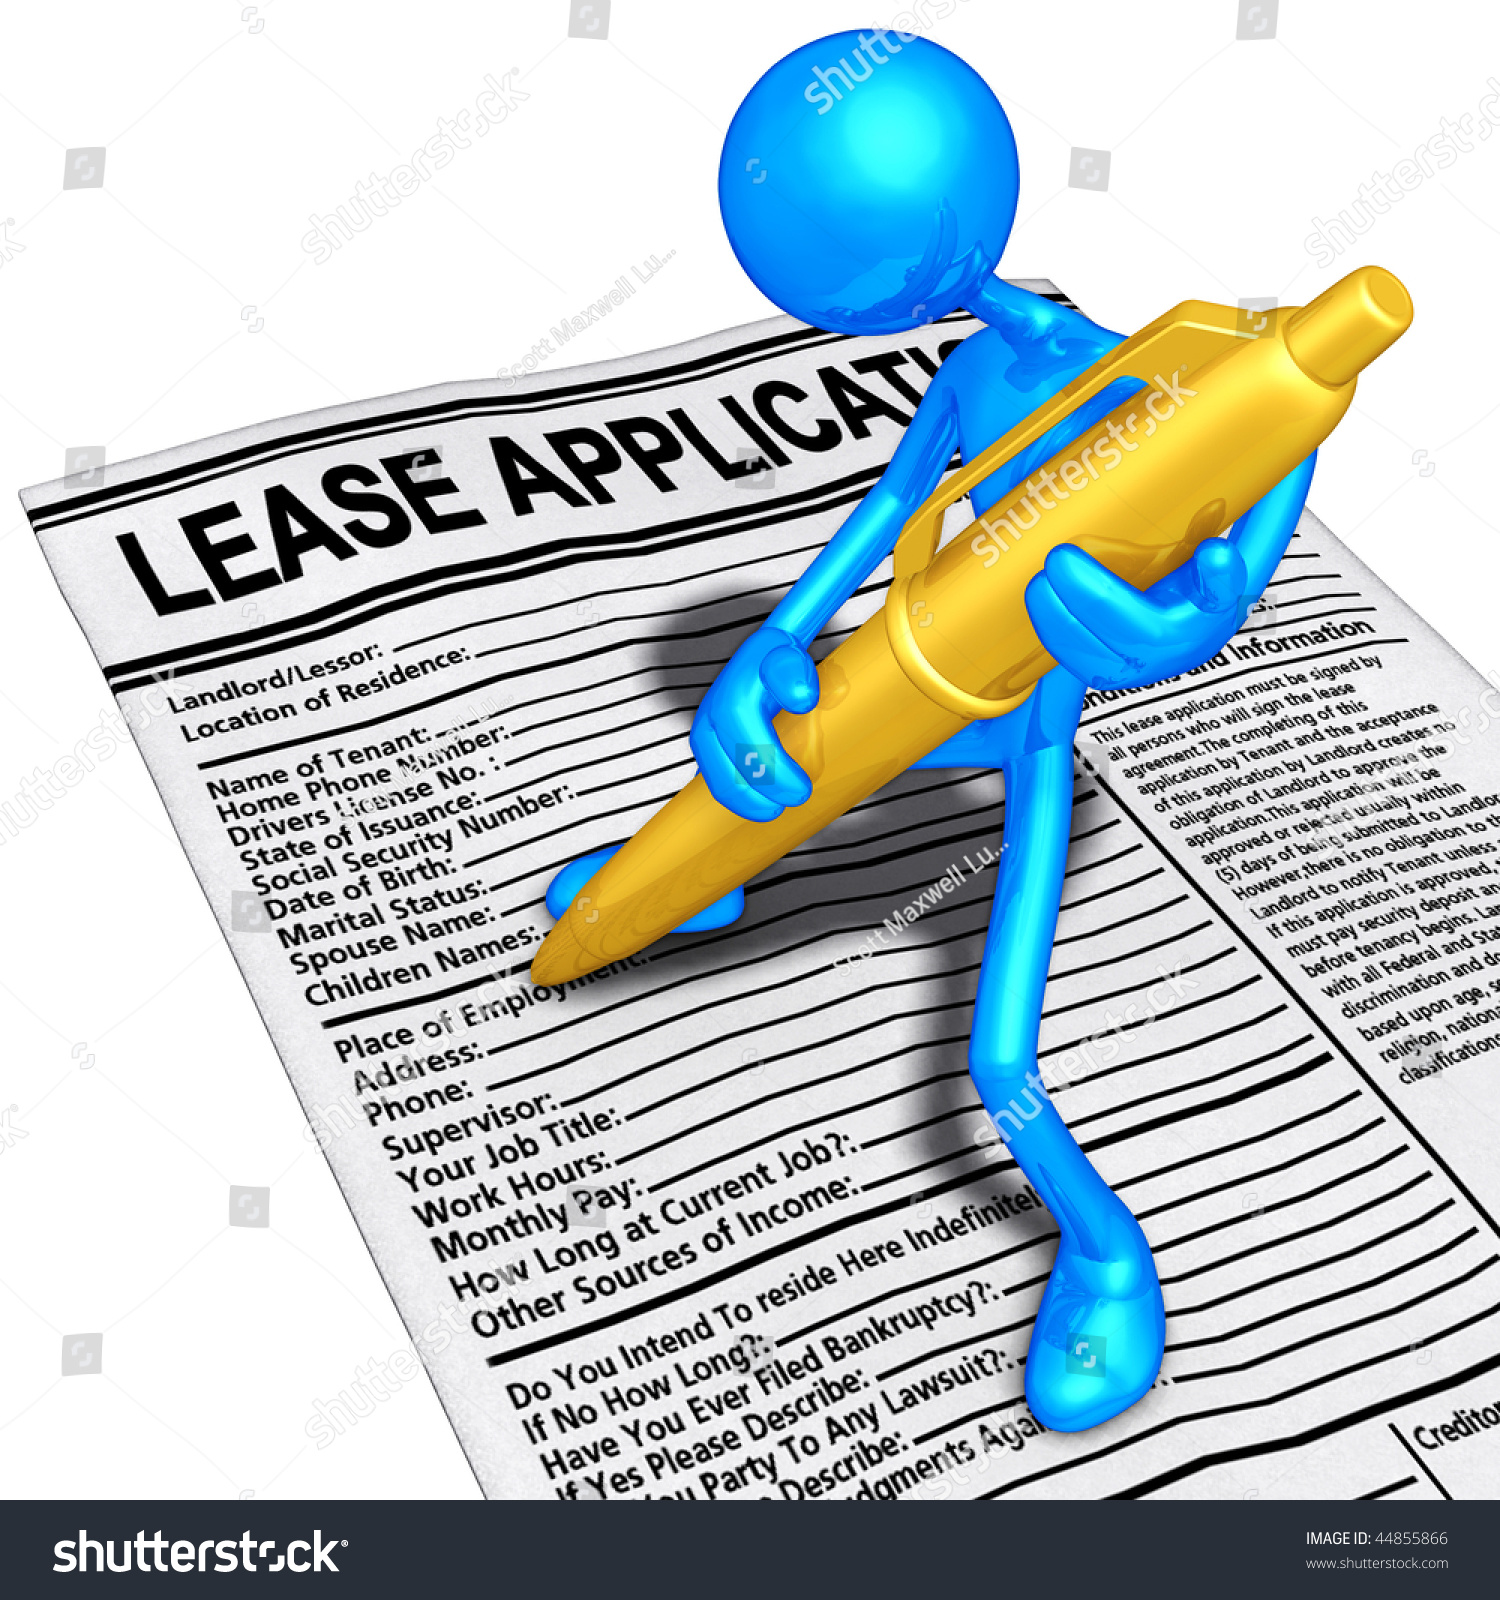 filling out lease application gold pen stock illustration  filling out a lease application gold pen